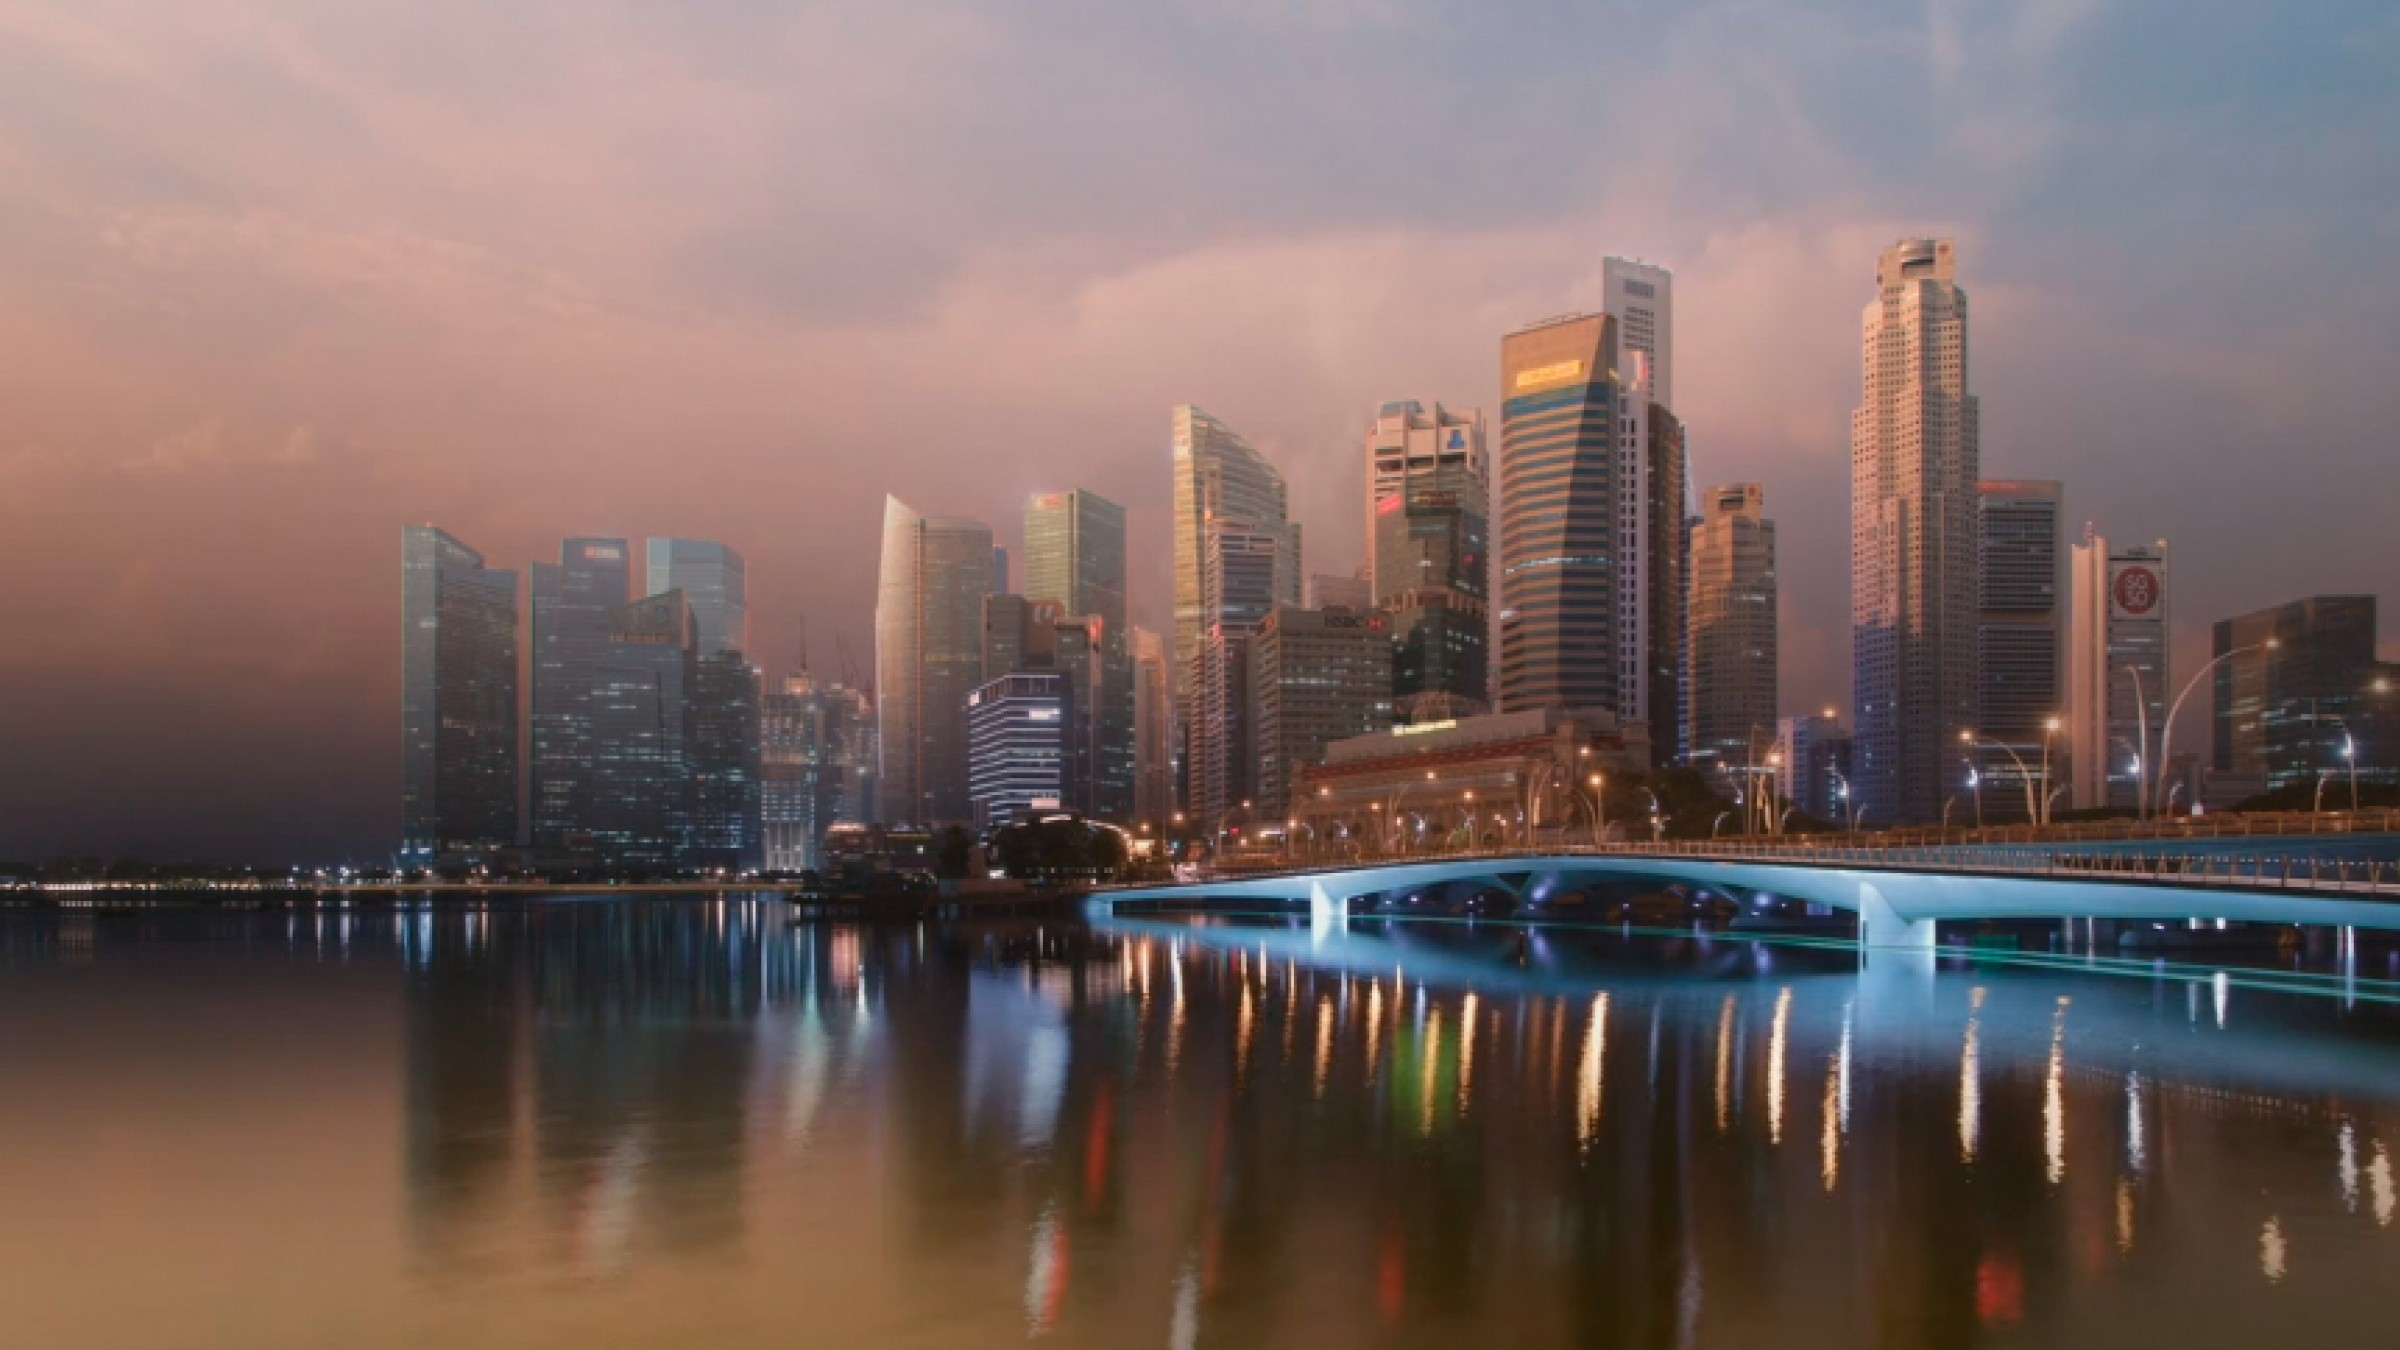 this amazing timelapse of singapore took 3 years to shoot. Black Bedroom Furniture Sets. Home Design Ideas